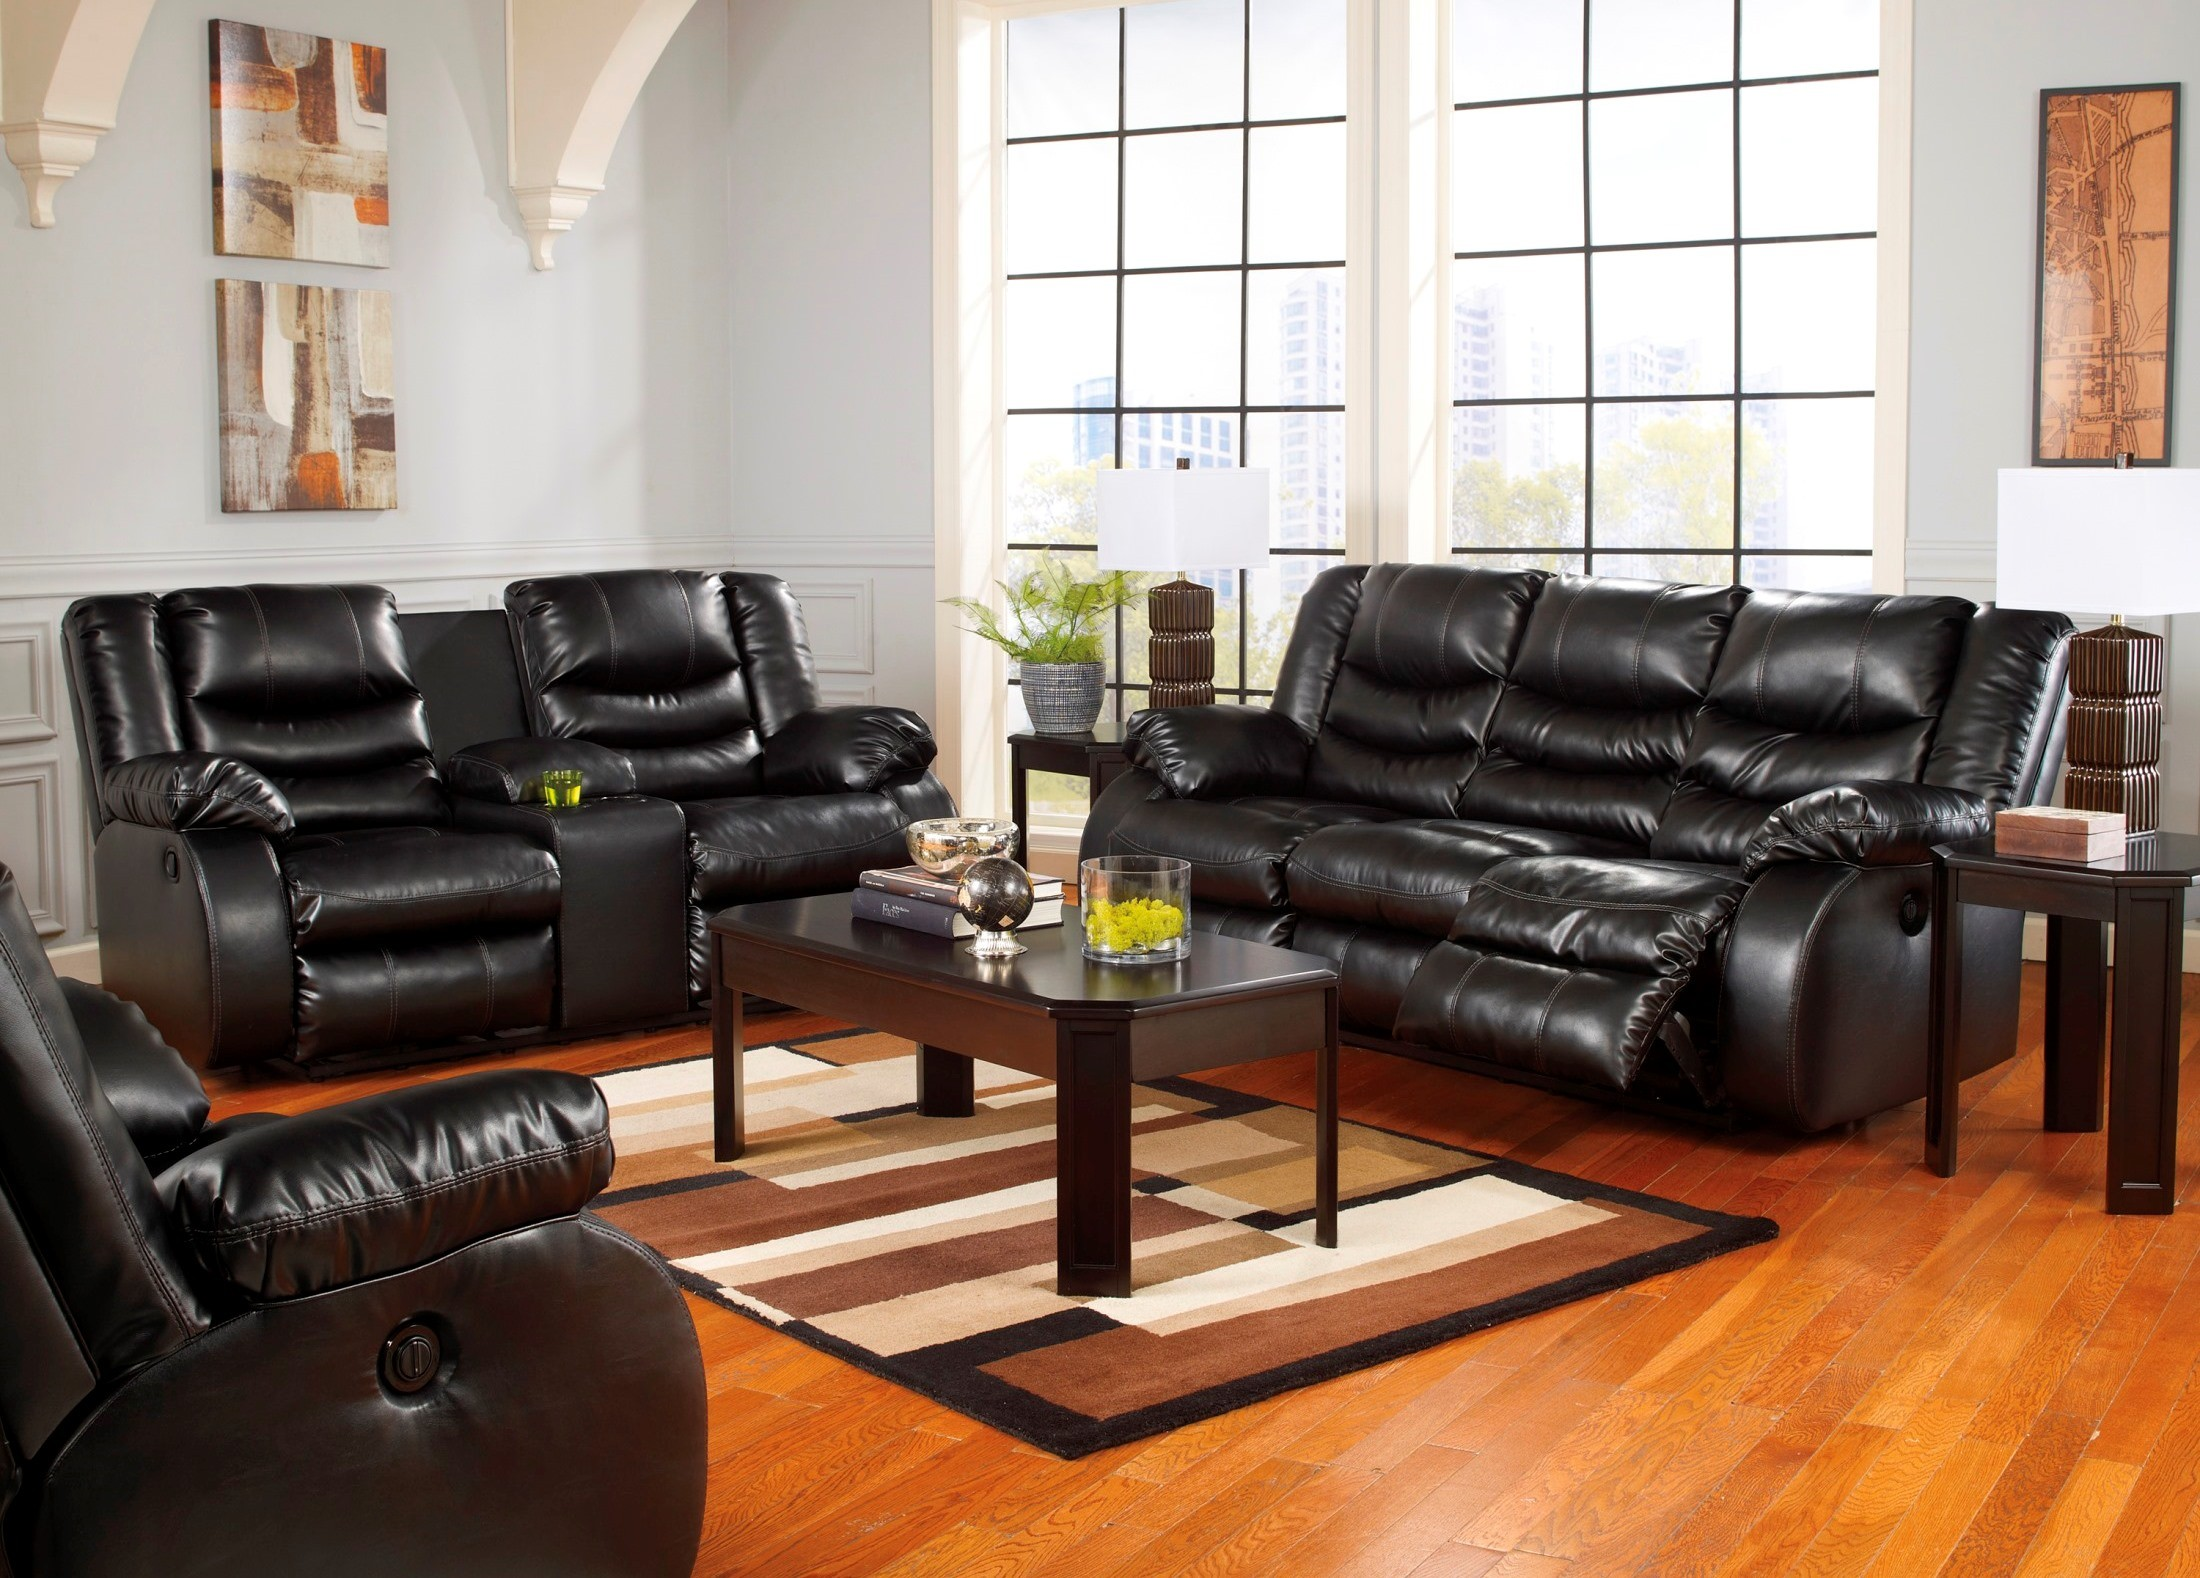 Linebacker Durablend Black Reclining Living Room Set From Ashley 95202 88 94 Coleman Furniture